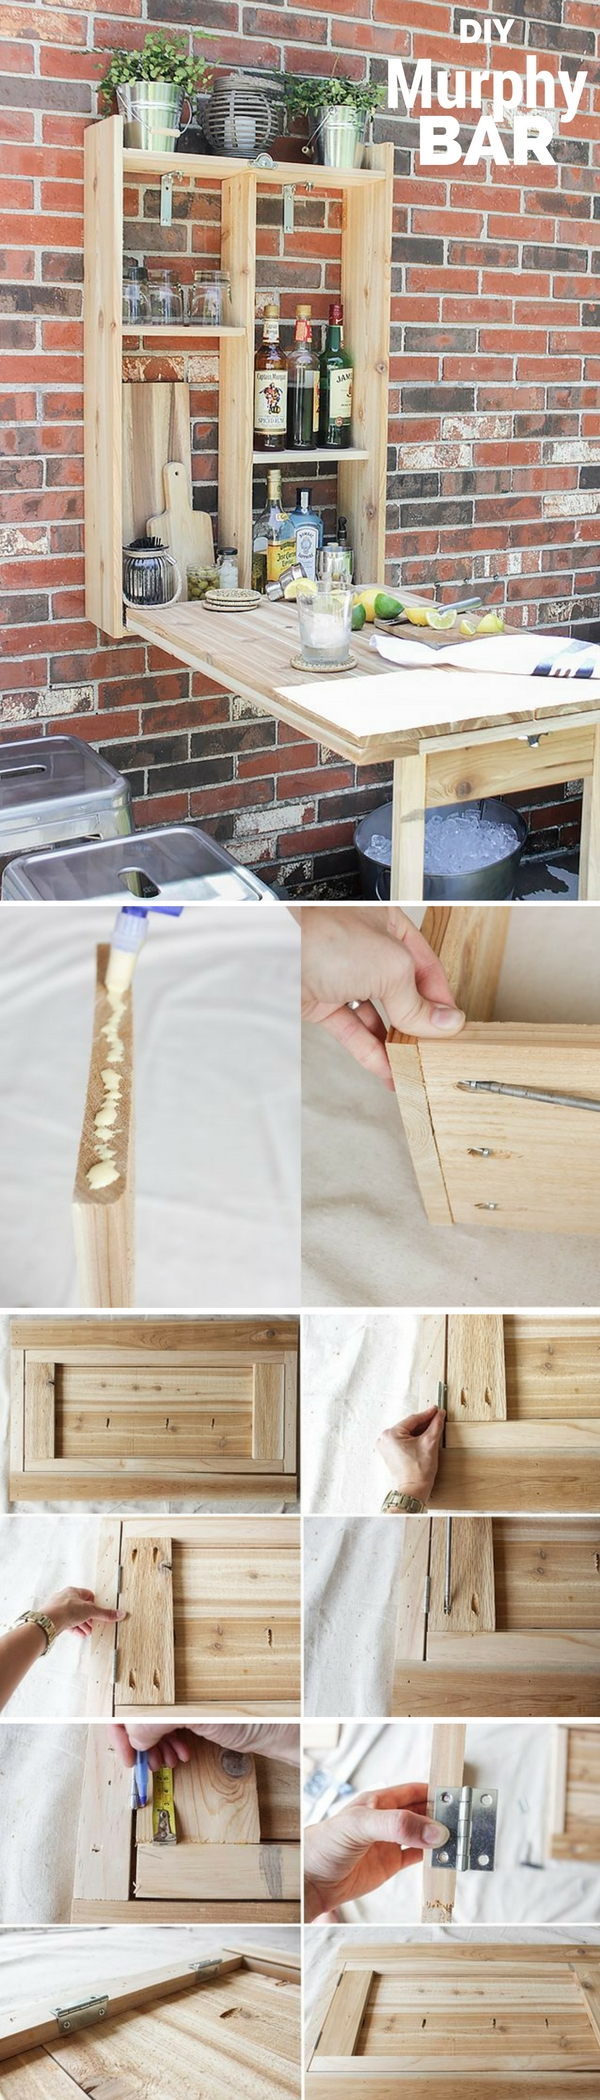 Check out the tutorial: #DIY Murphy Bar